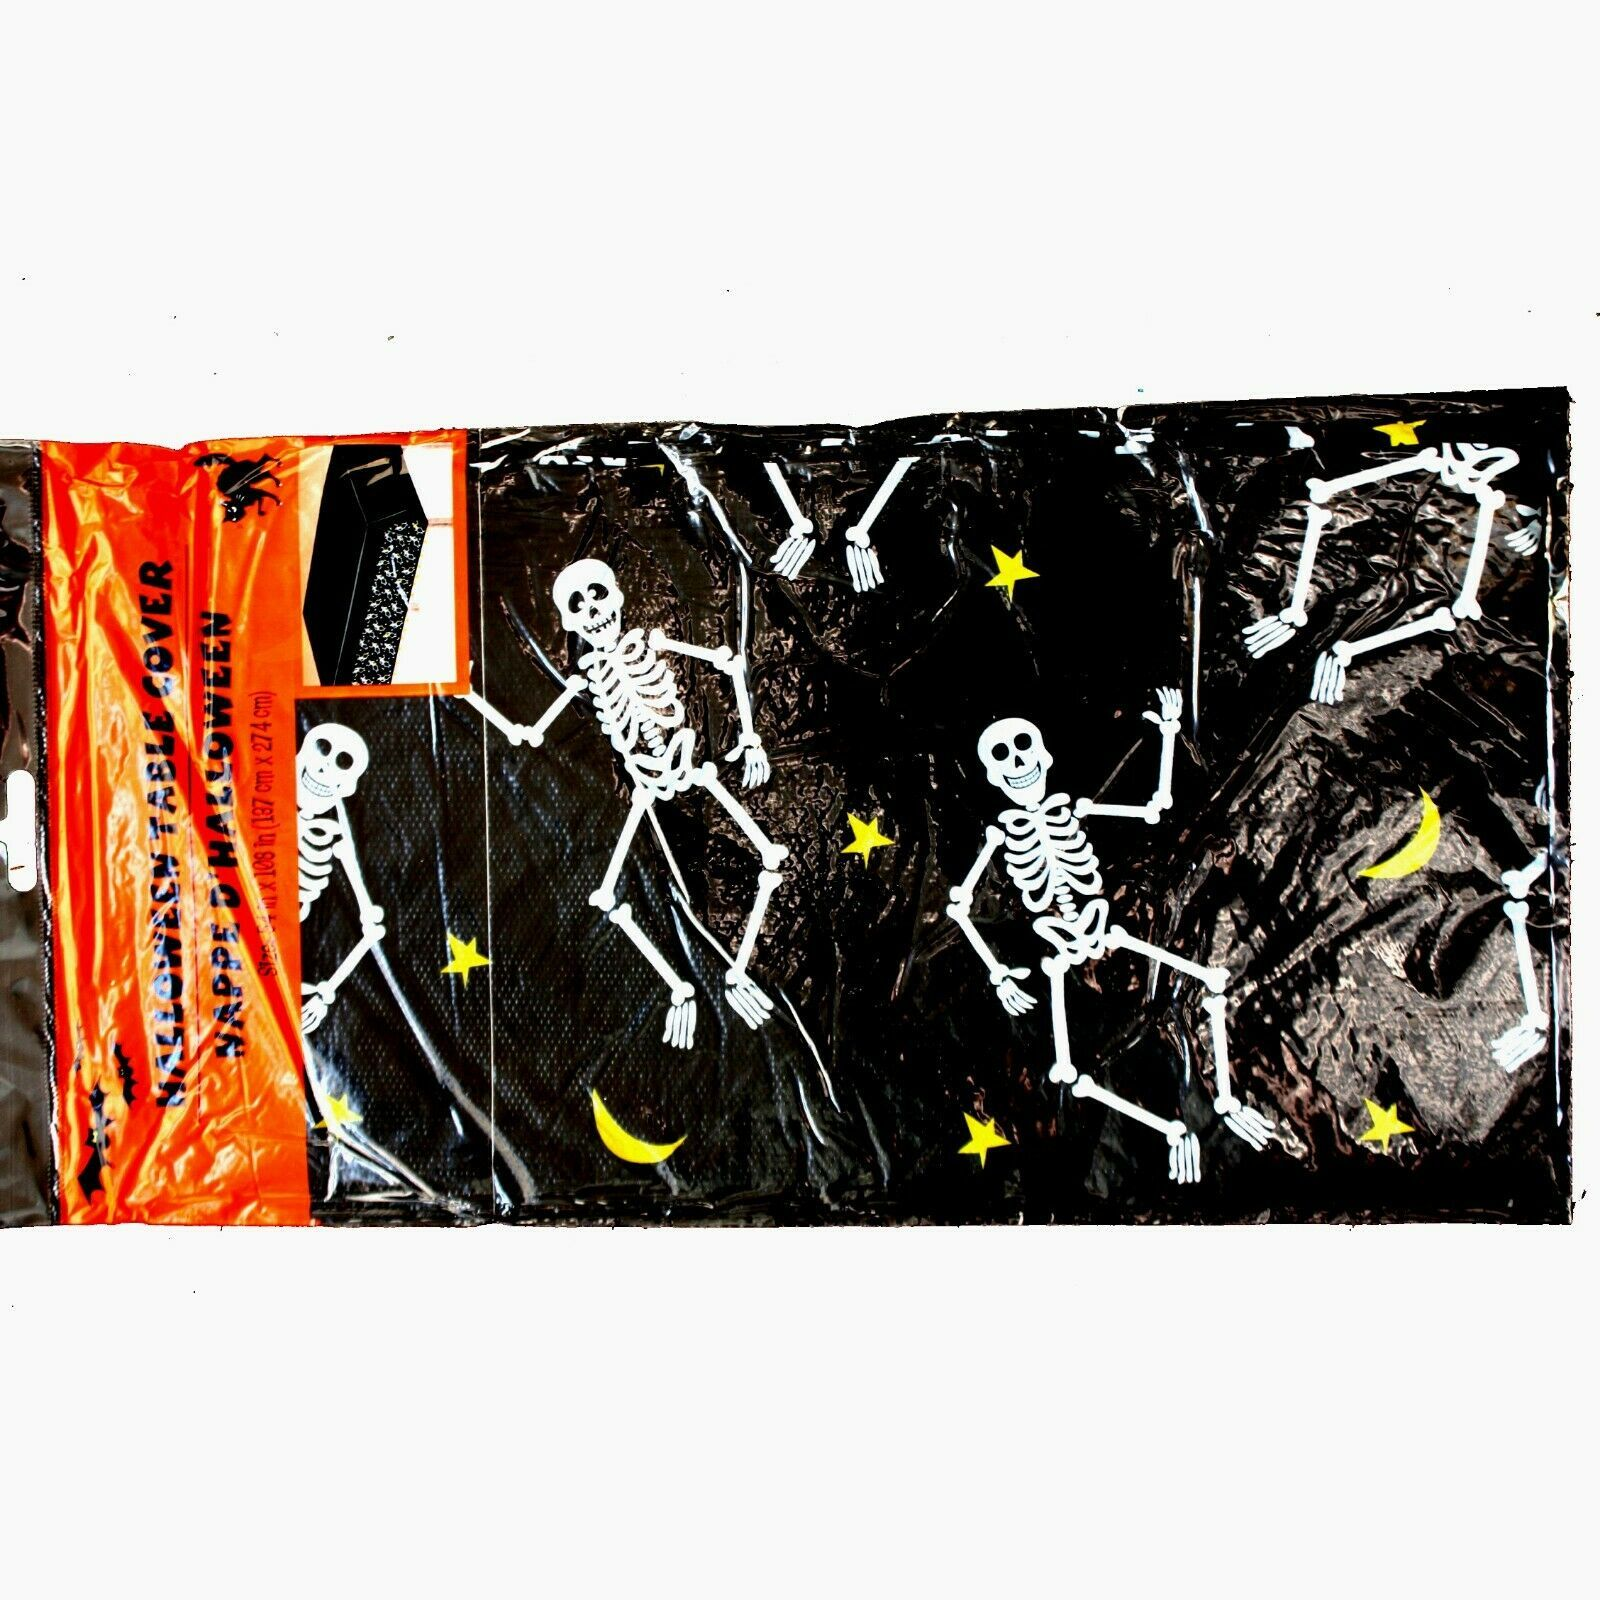 Primary image for Gothic-DANCING SKELETONS BORDER TABLE CLOTH COVER-Fun Halloween Party Decoration